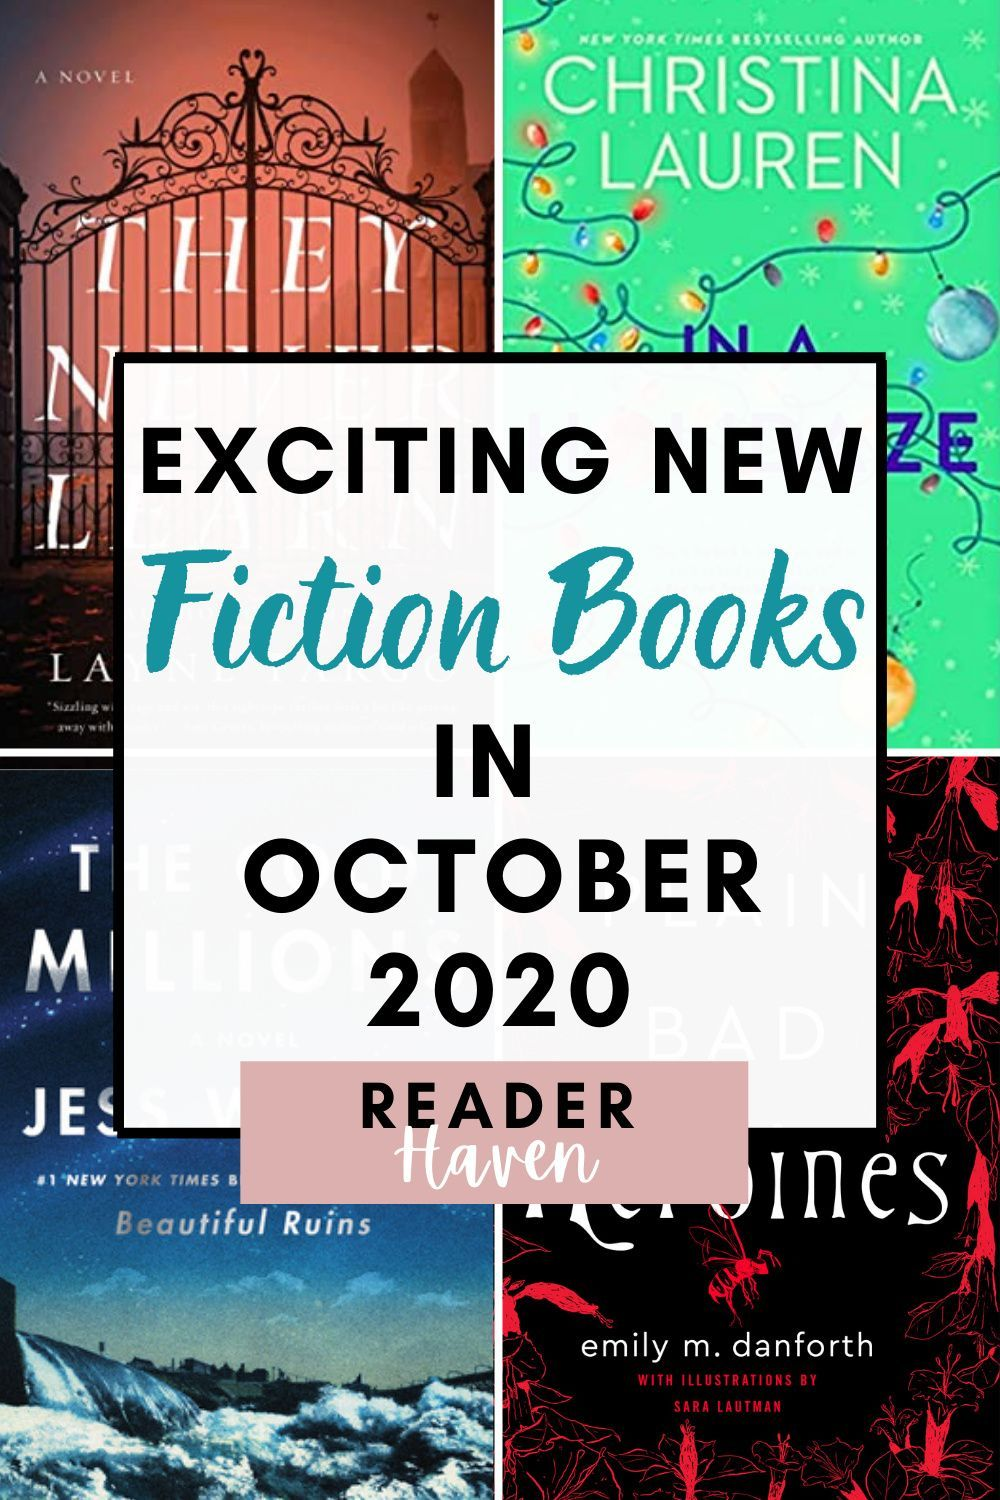 We're getting into spooky season, which means it's time for another list of new books / releases! Here are some of my most-anticipated October 2020 book releases – some of which are PERFECT books for Halloween. #books #booklist #october #halloween #reader